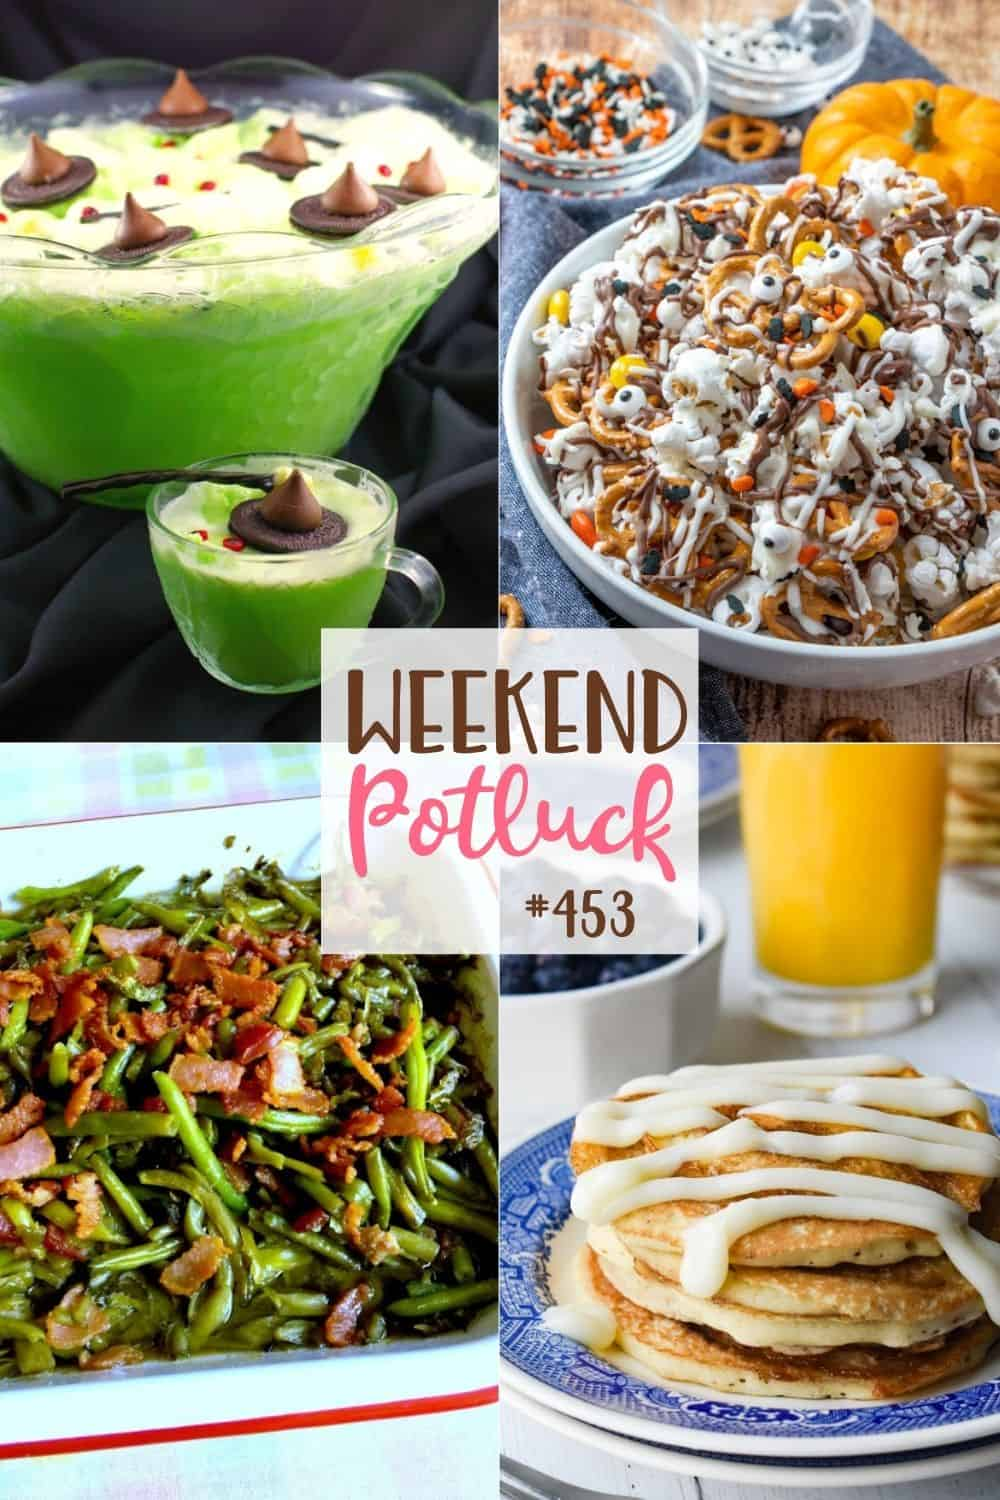 Weekend Potluck featured recipes include: Melting Witch Halloween Punch, Magic Green Beans, Cinnamon Roll Pancakes and Monster Munch